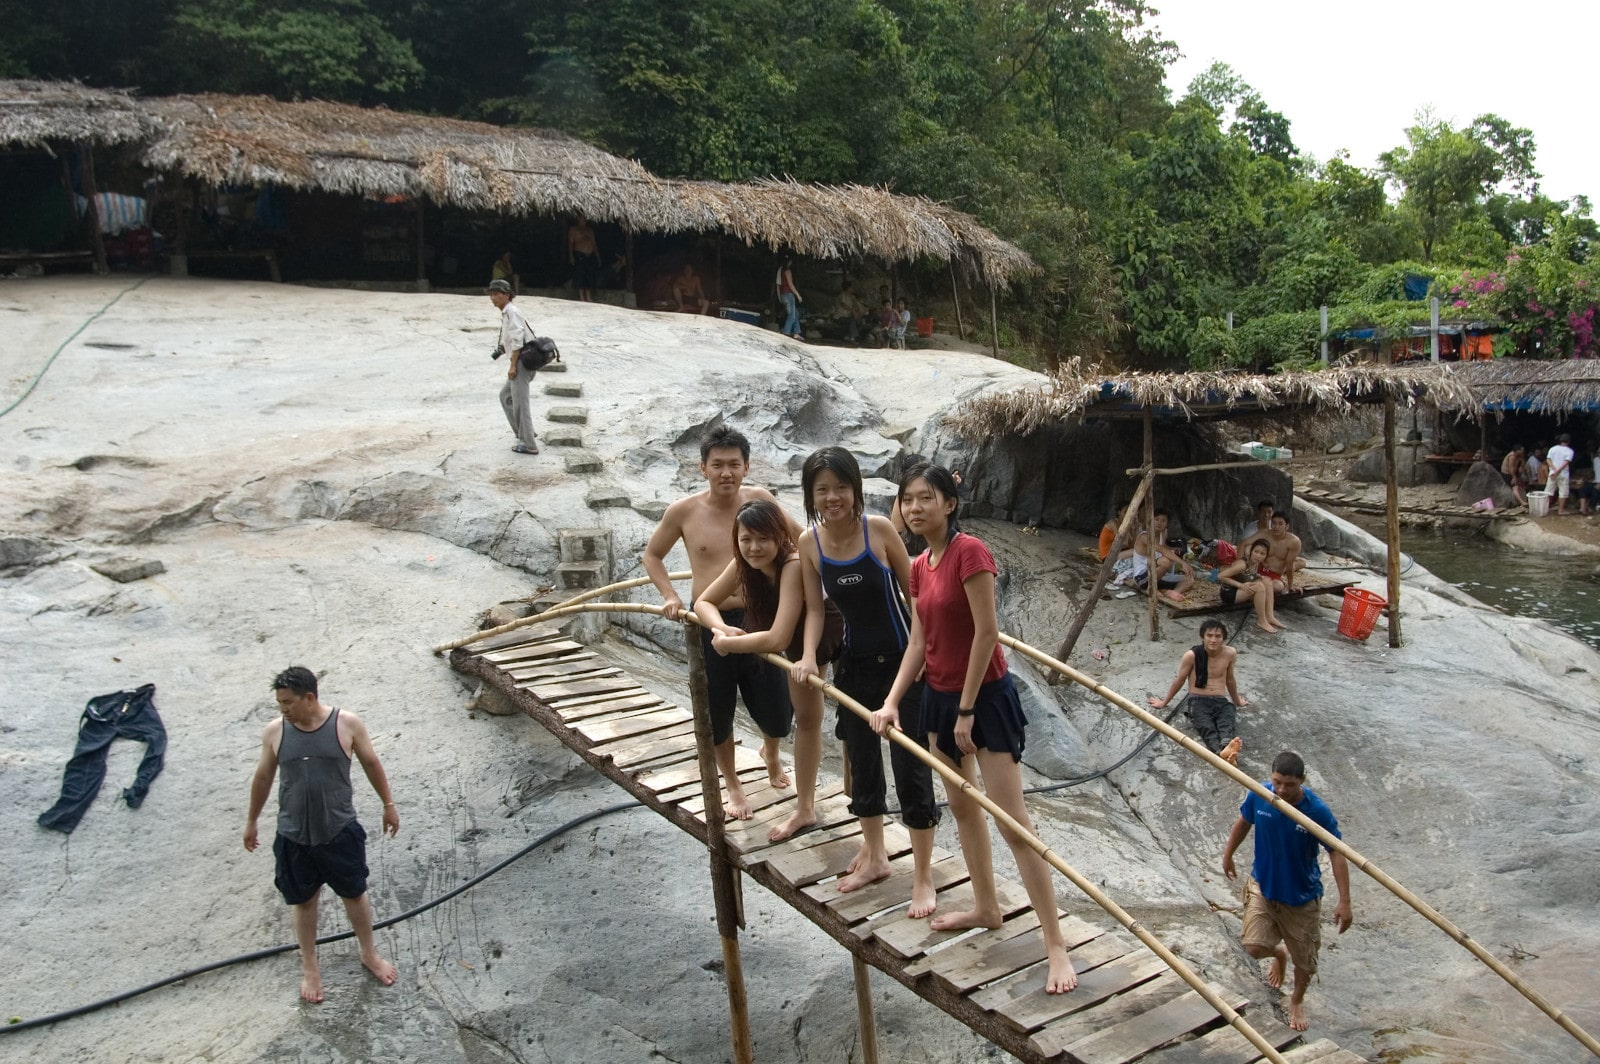 Image of visitors at the Elephant Springs swimming hole in Hue, Vietnam